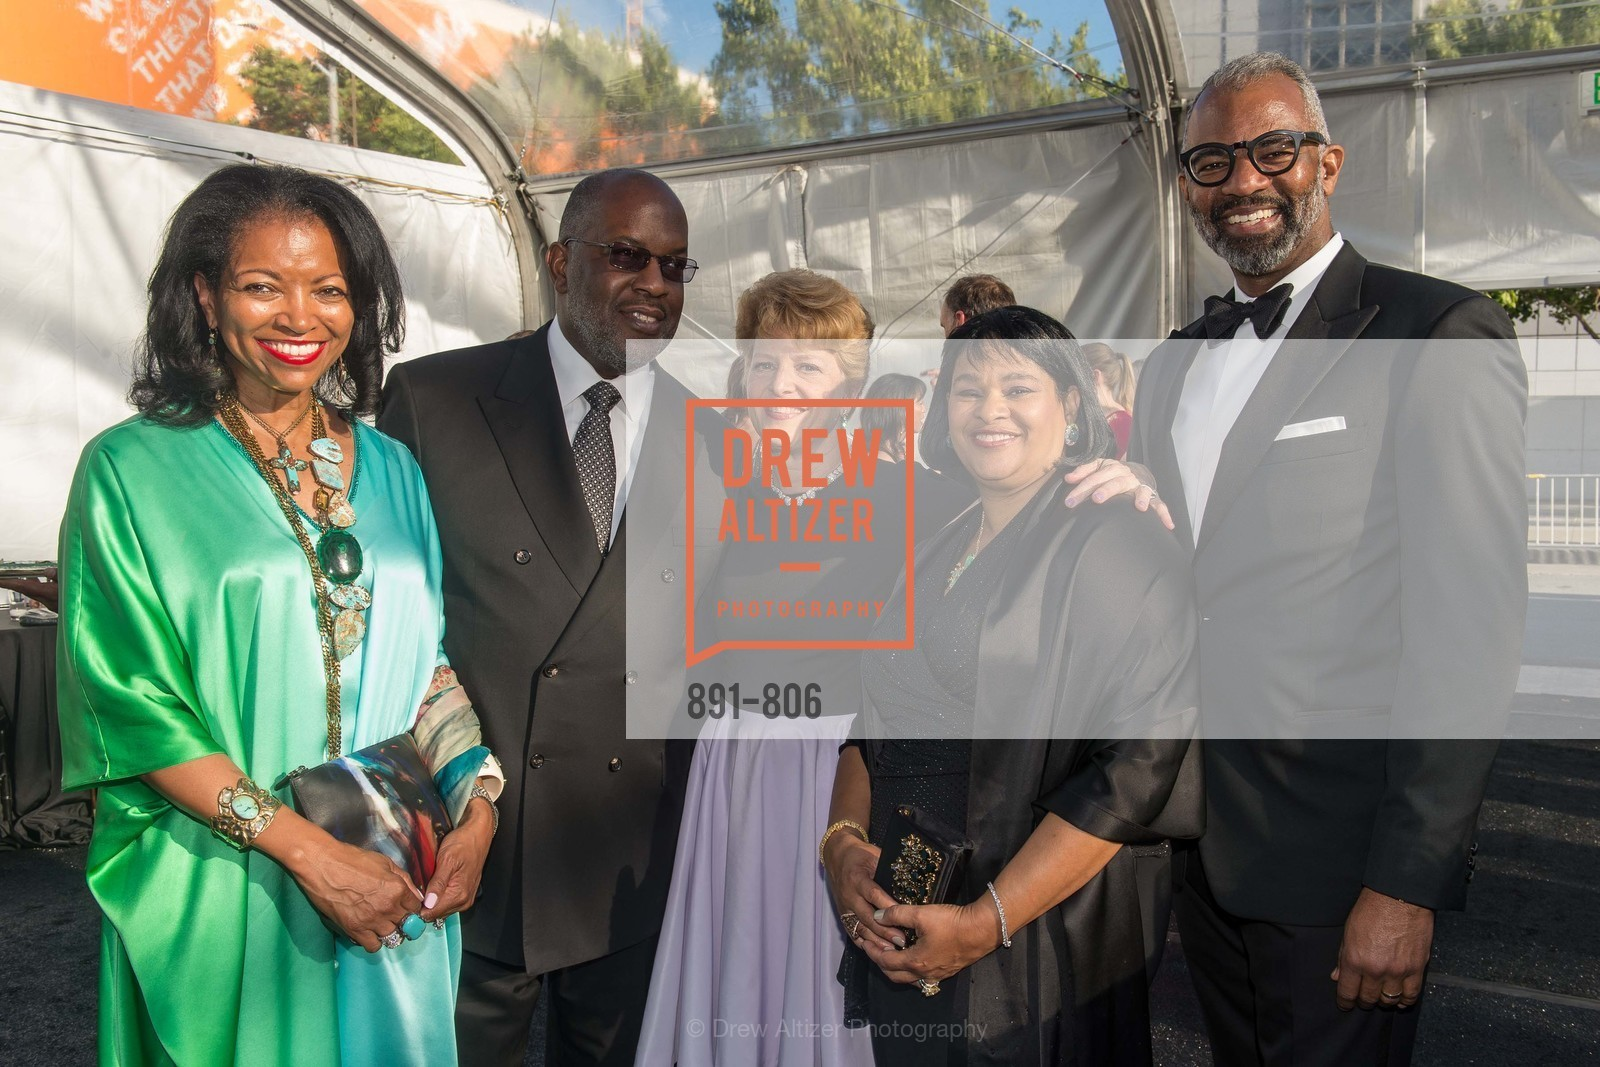 Denise Bradley Tyson, Bernard Tyson, Carey Perloff, Dr. Tony Cole, Robyn Coles, A.C.T. Gala Come Get Stranded, US, April 26th, 2015,Drew Altizer, Drew Altizer Photography, full-service event agency, private events, San Francisco photographer, photographer California